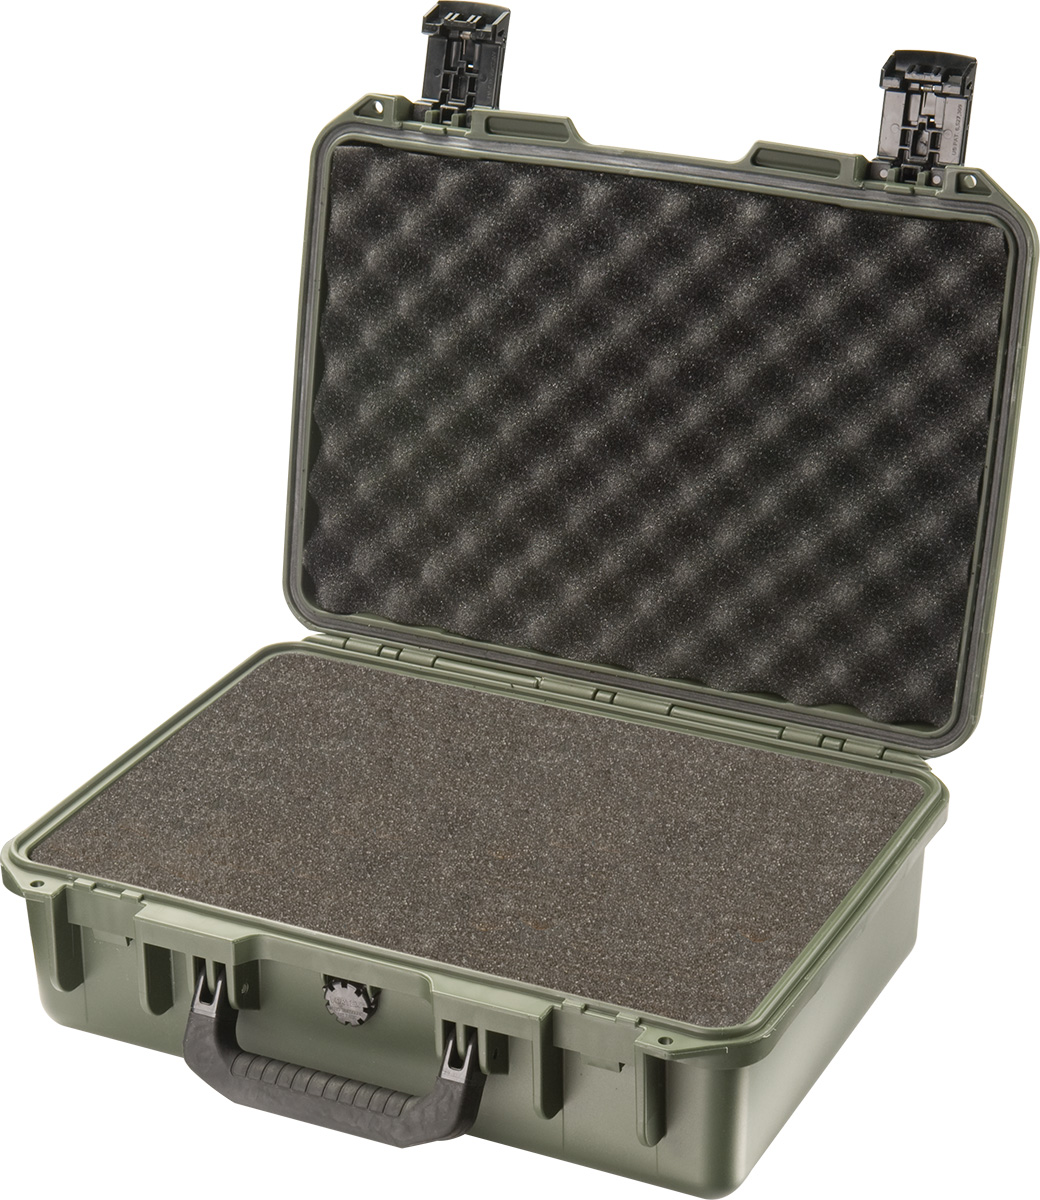 pelican im2200 foam laptop case